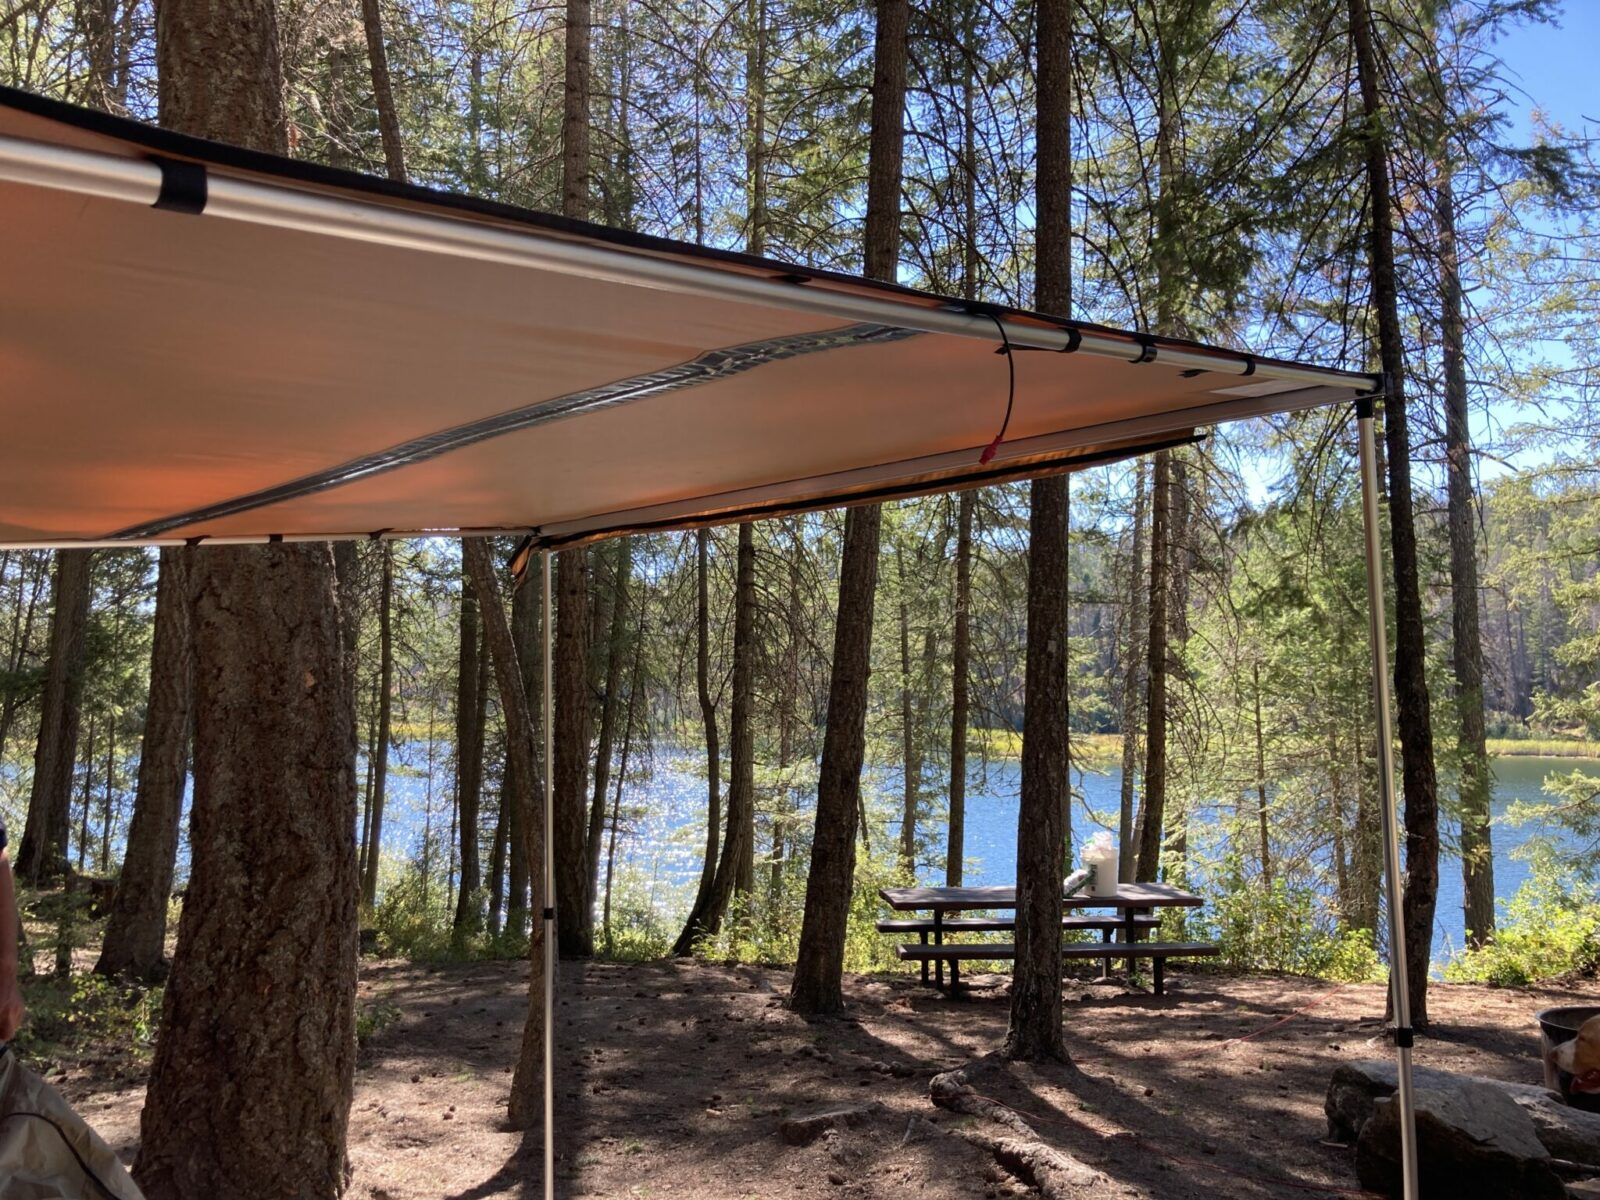 A roof rack awning set up and providing shade in a forested campground next to a lake